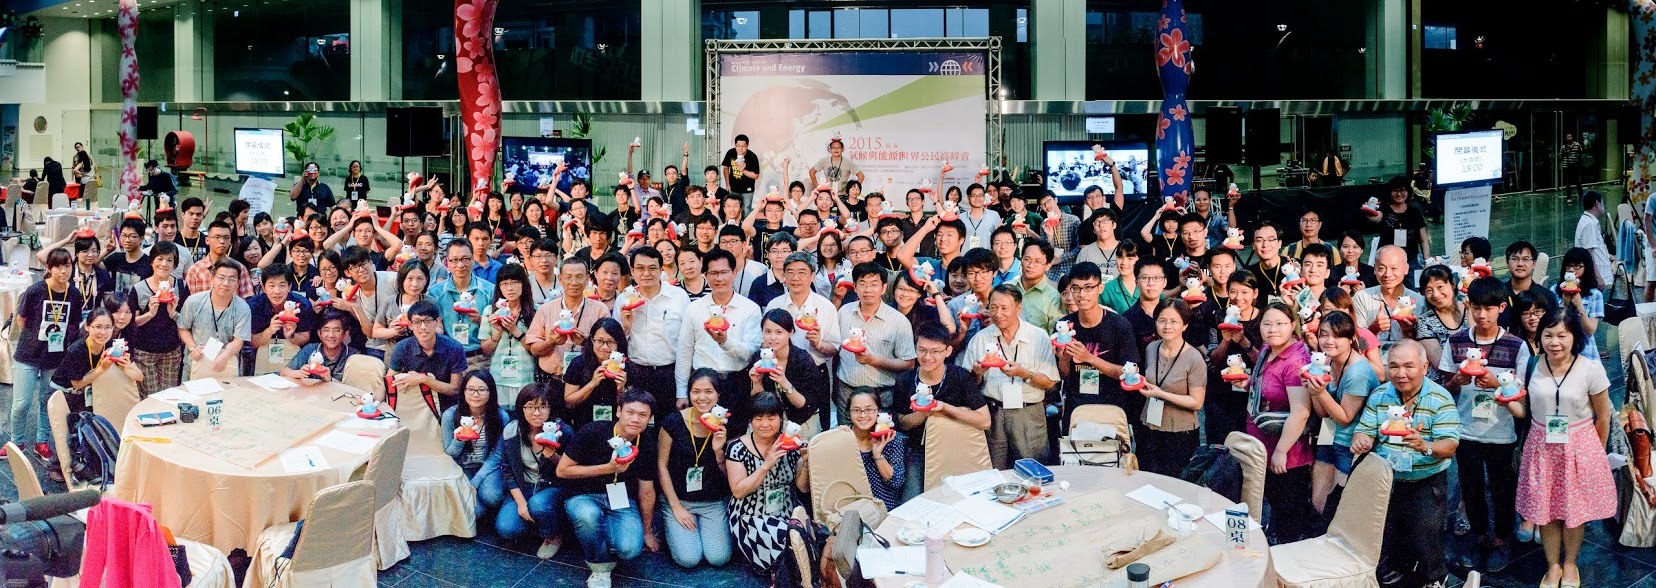 Citizens group photo Taichung